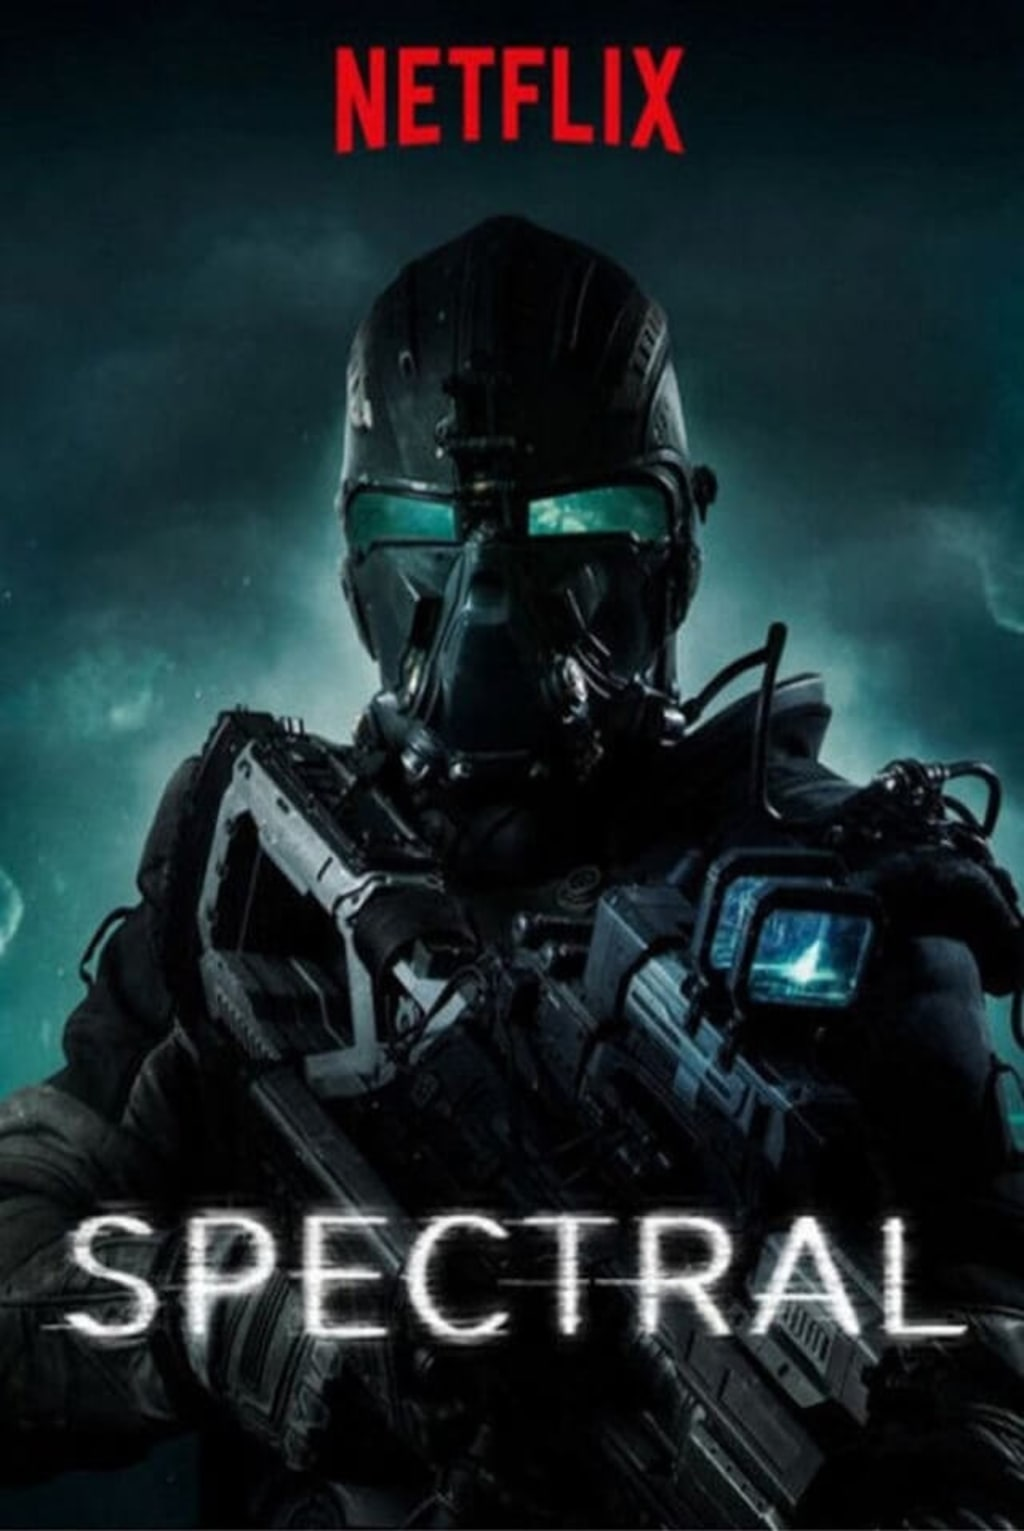 Reed Alexander's Horror Review of 'Spectral' (2016)